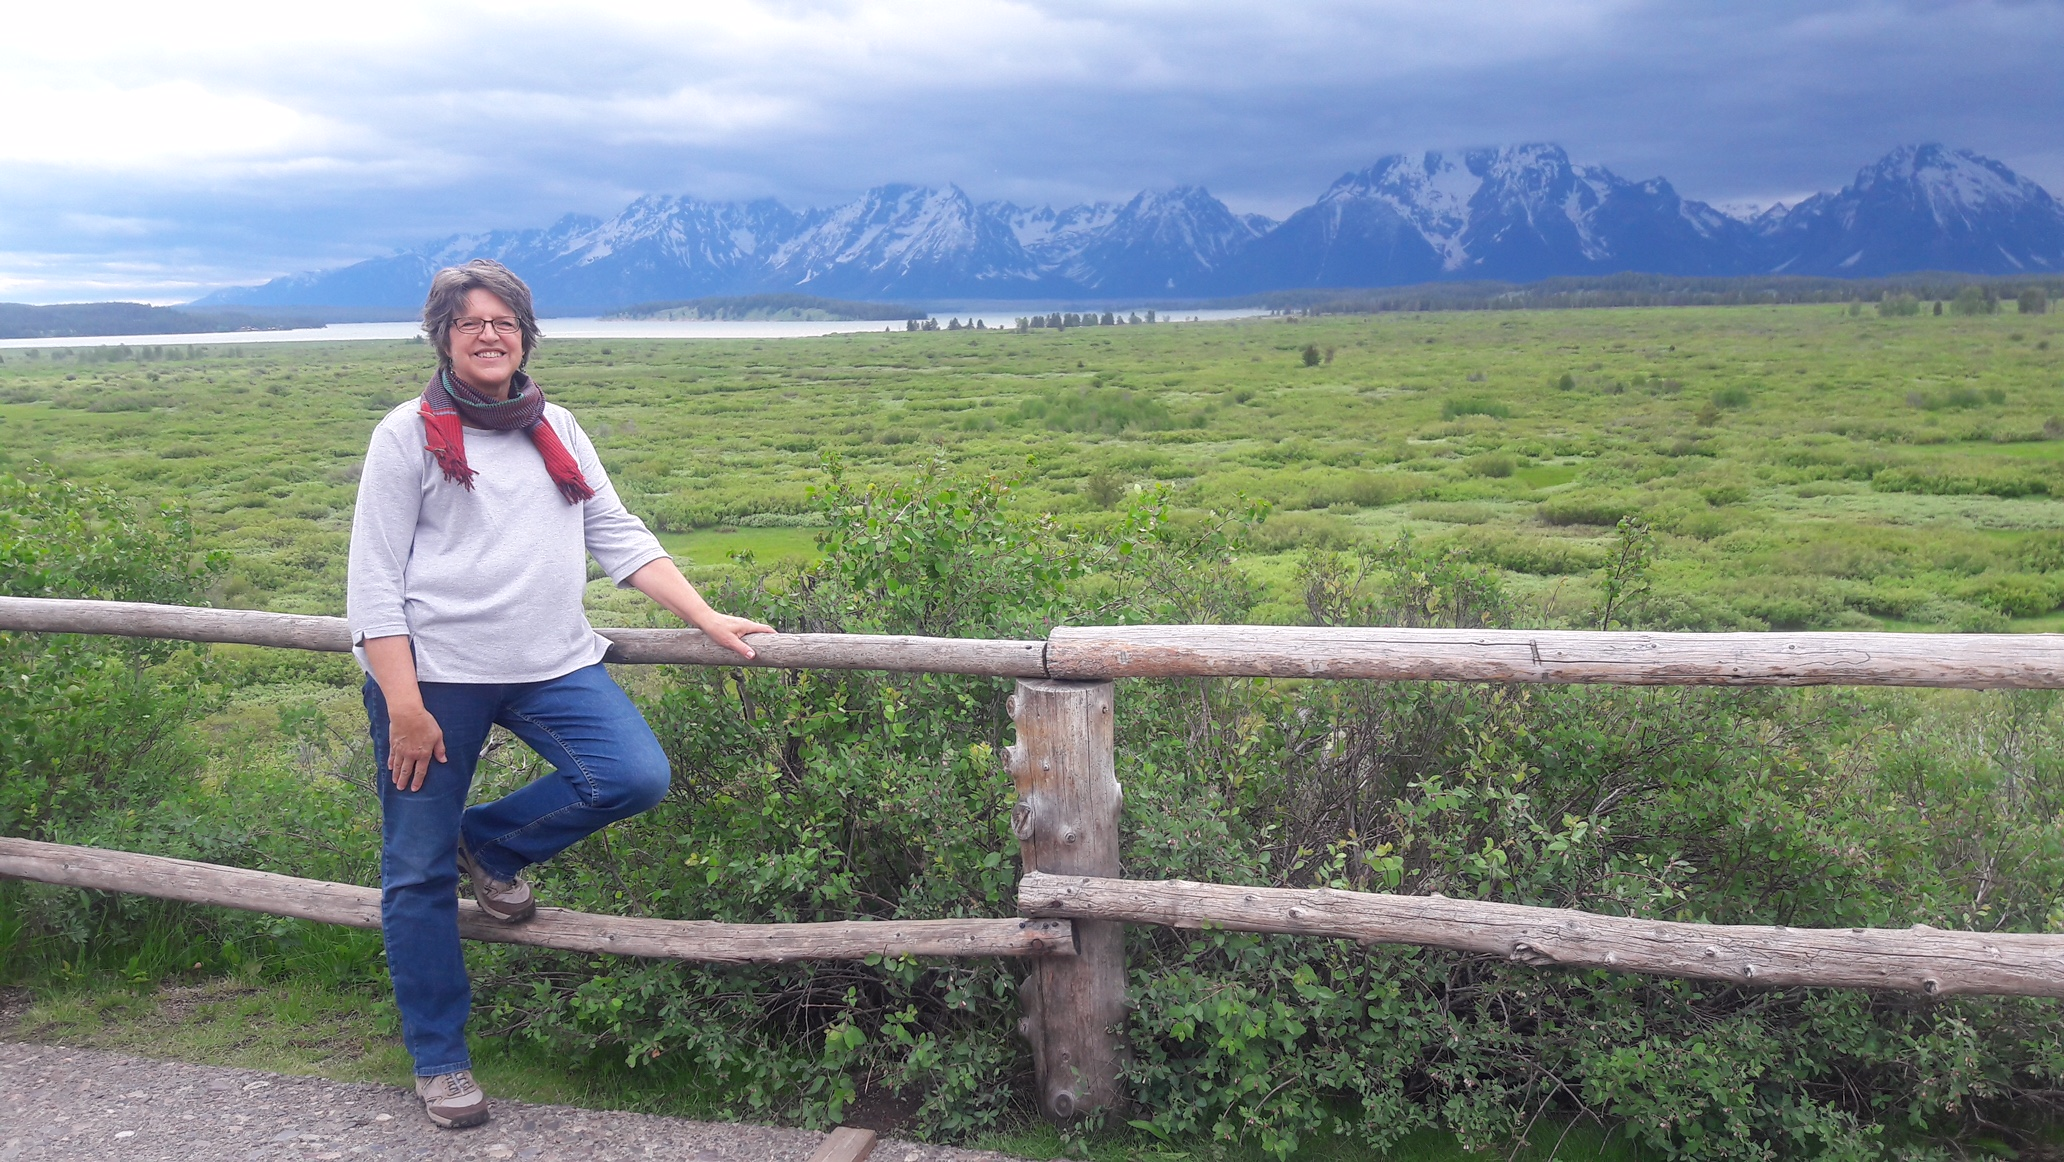 Standing in front of Mr. Rockefeller's view - Jackson Lake Lodge - GTNP